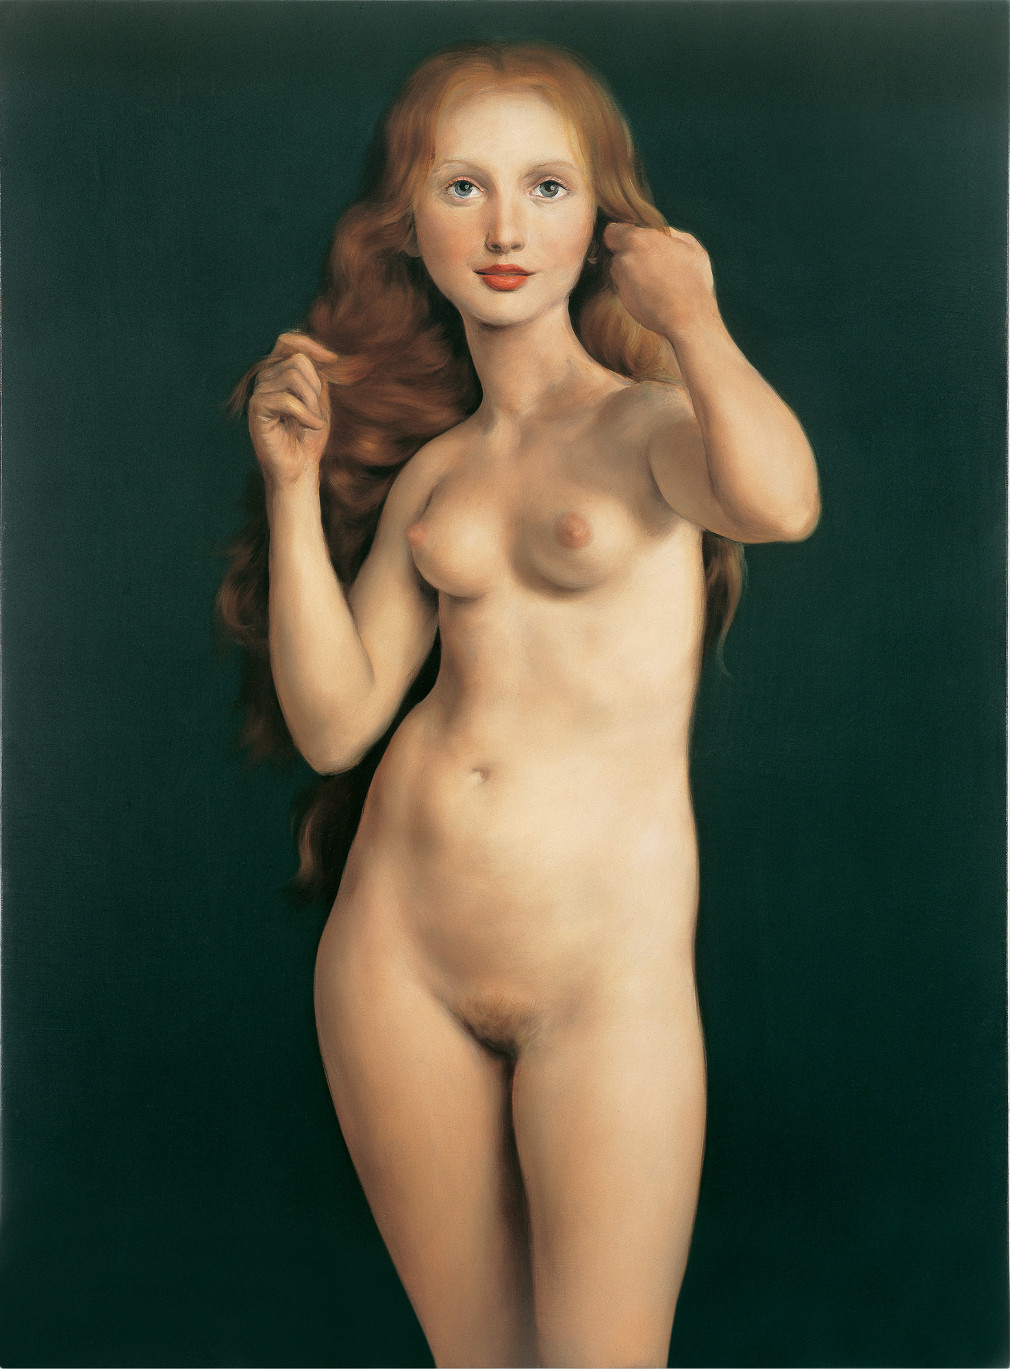 Andy Richter Nude nude: from modigliani to currin at gagosian